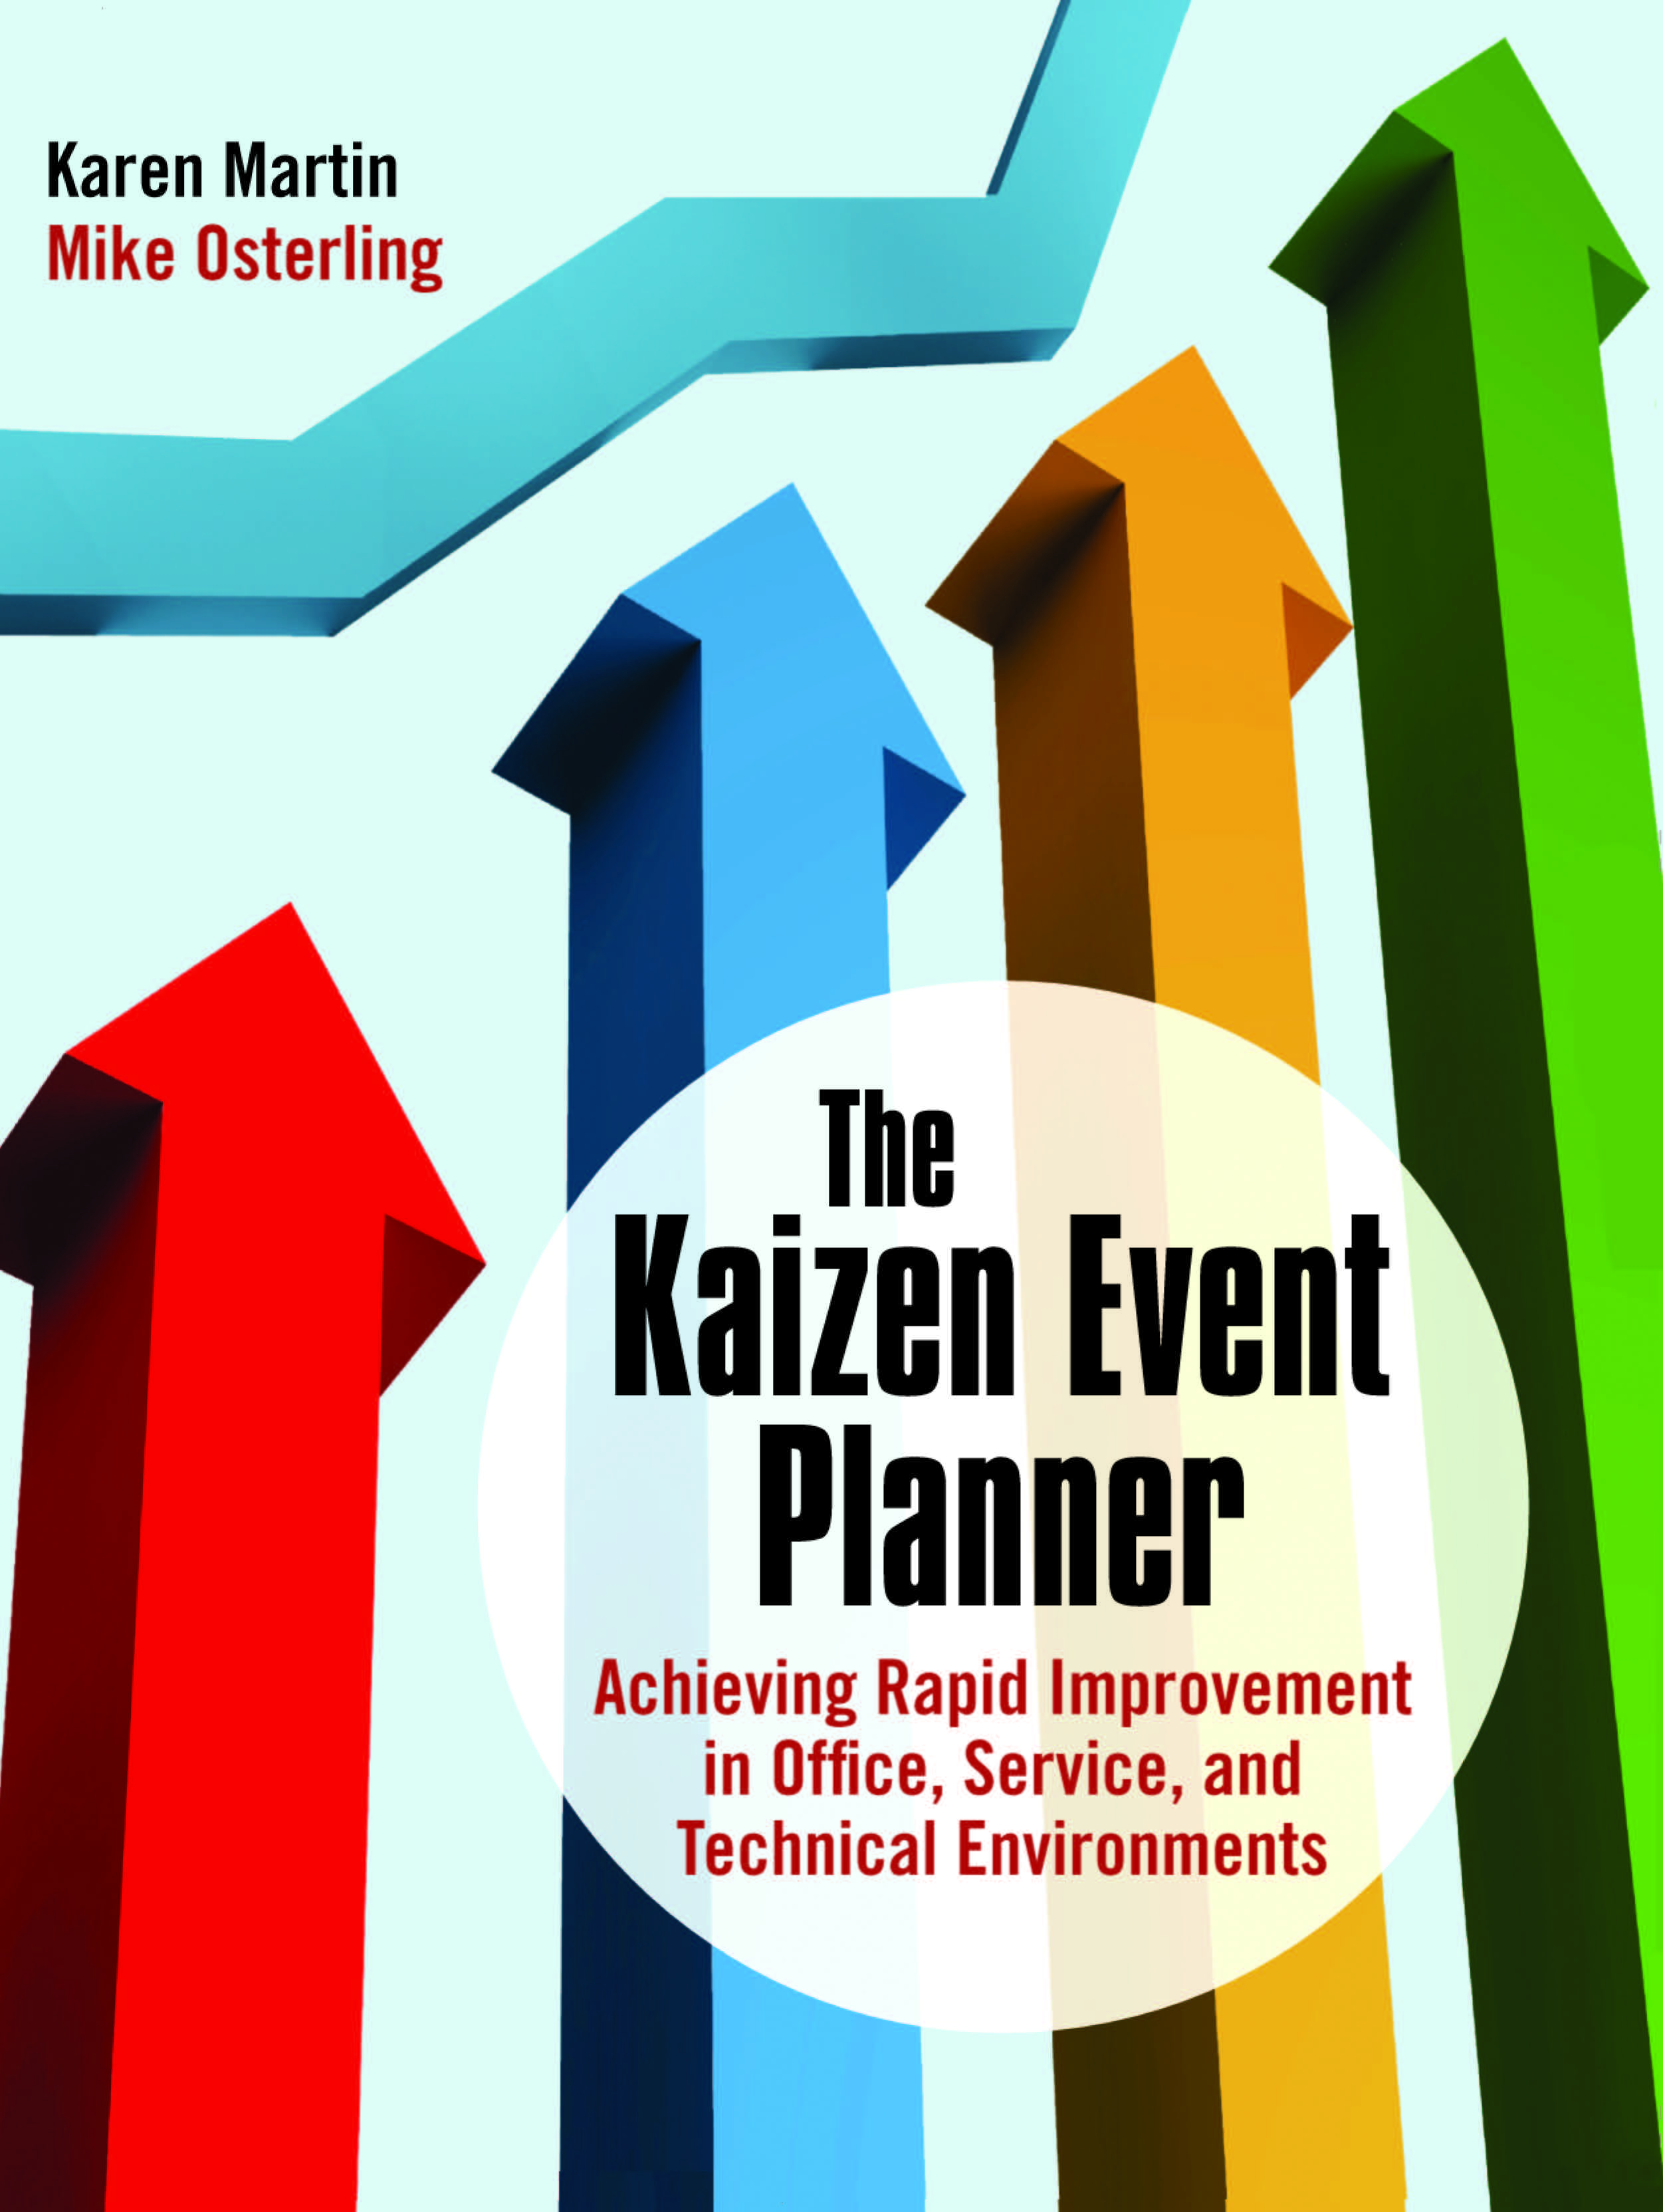 The Kaizen Event Planner: Achieving Rapid Improvement in Office, Service, and Technical Environments (Paperback) book cover